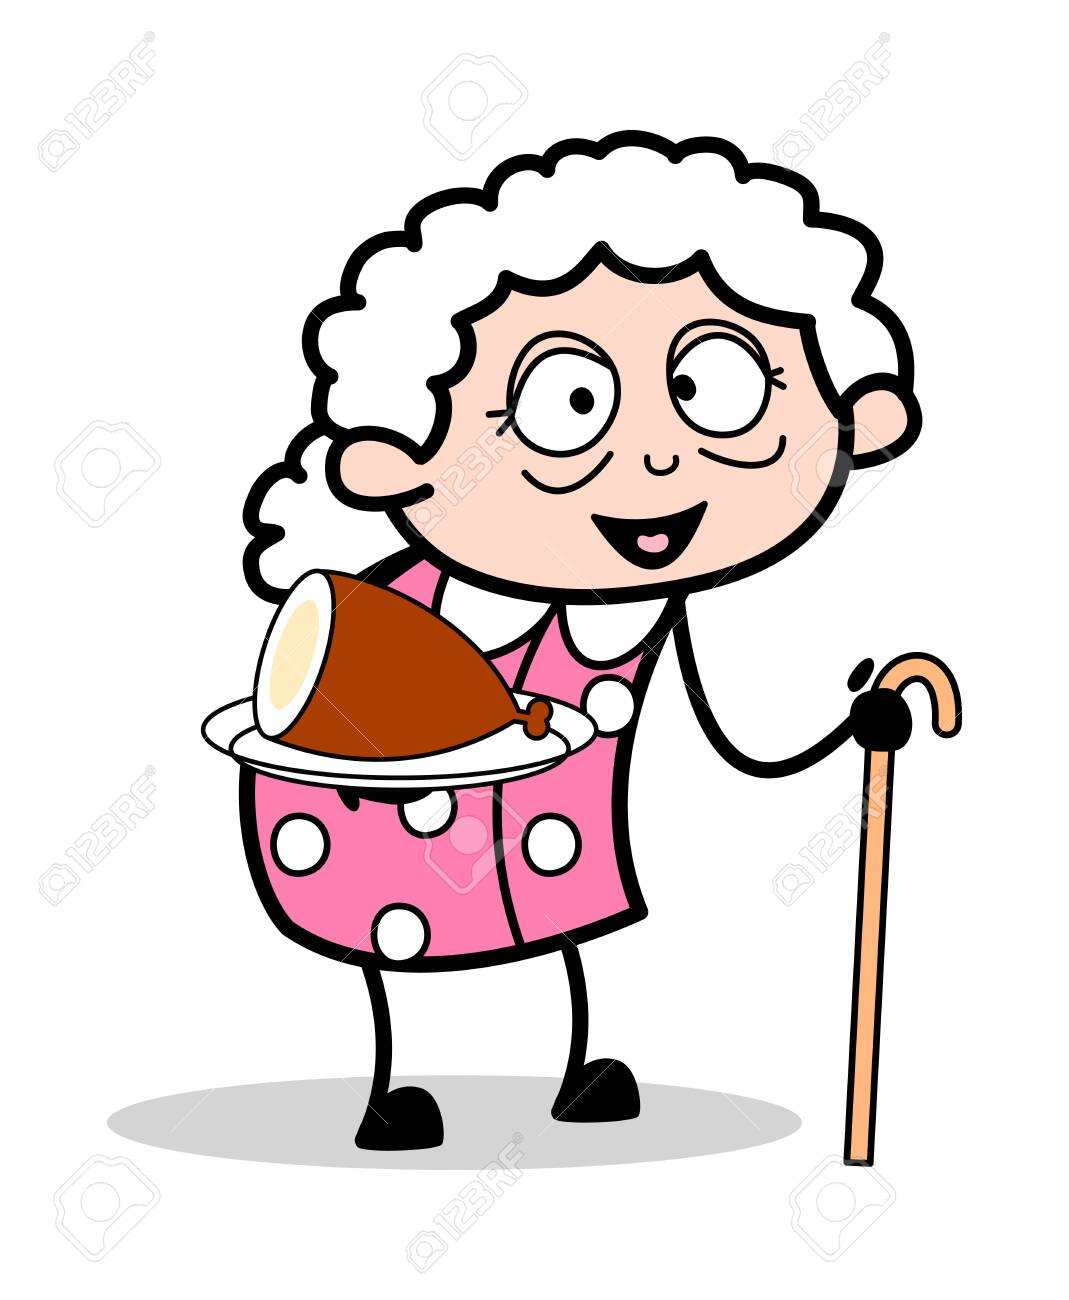 Presenting Non Veg Food Old Woman Cartoon Granny Vector Illustration Royalty Free Cliparts Vectors And Stock Illustration Image 123700378